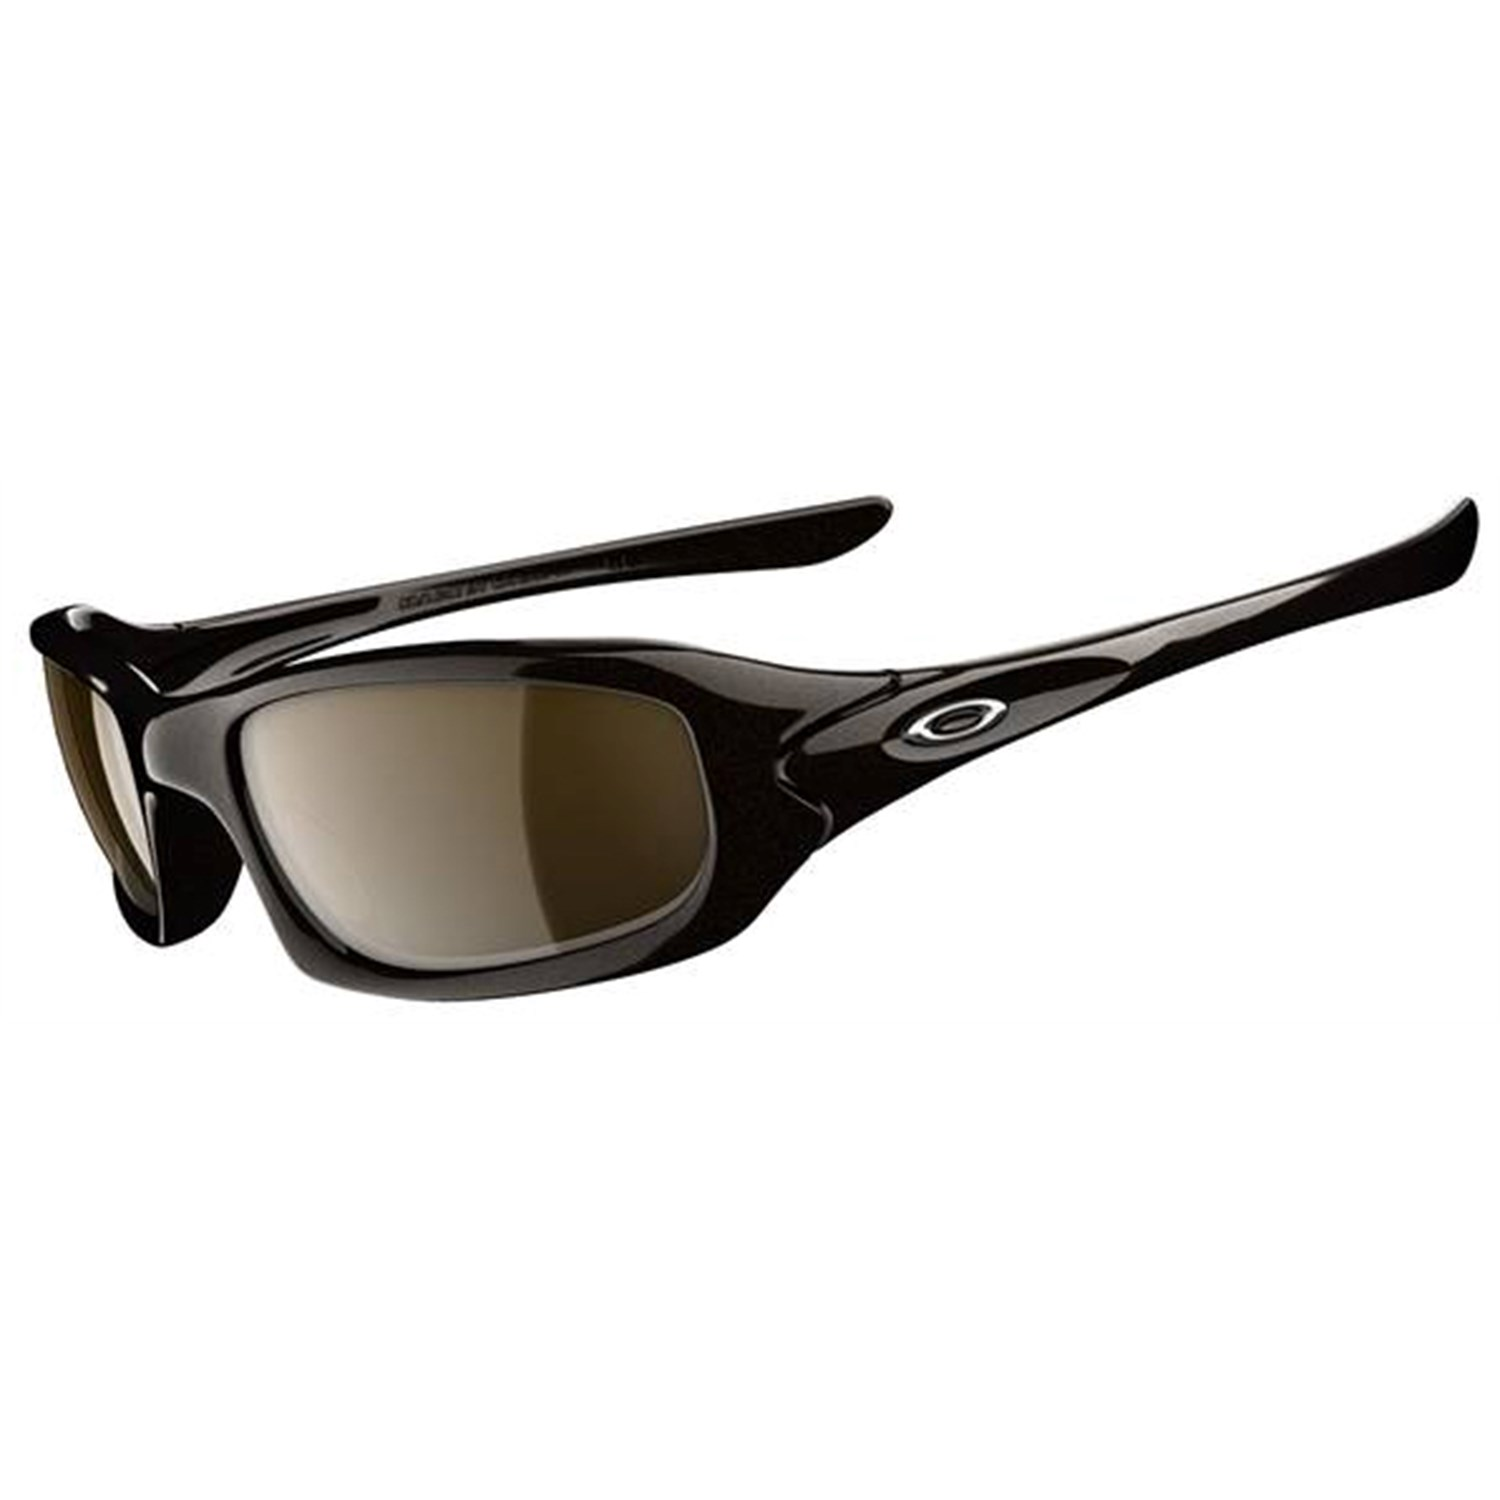 5b1a623ac5 Oakley Sunglasses For Small To Medium Faces « Heritage Malta